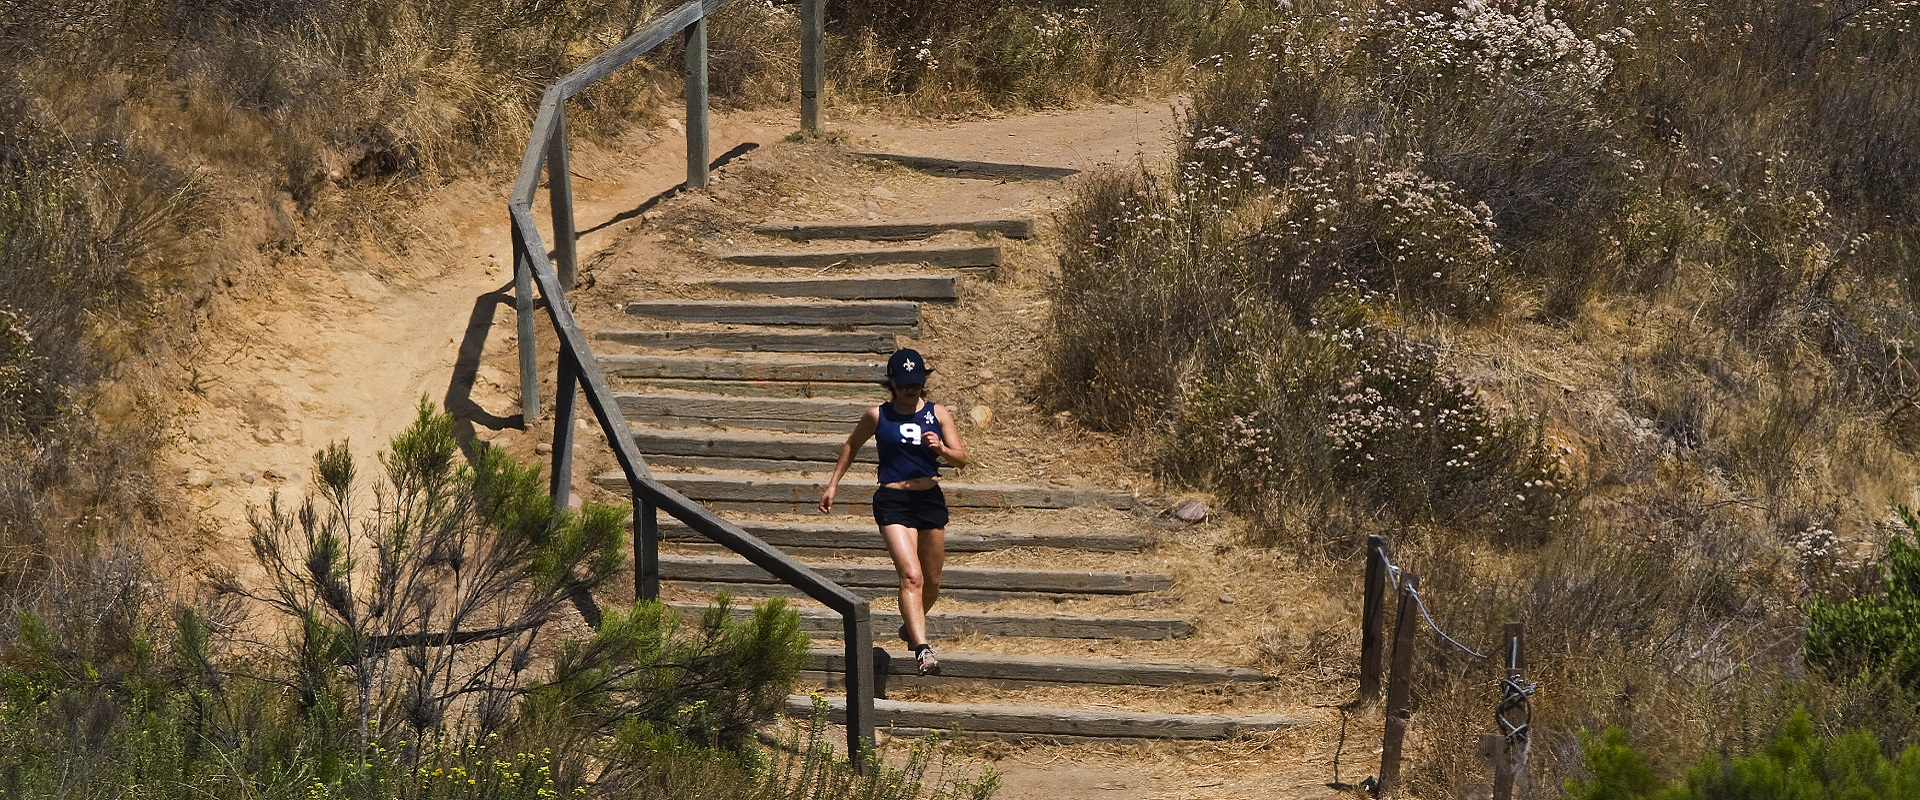 Woman running a trail at Balboa Park